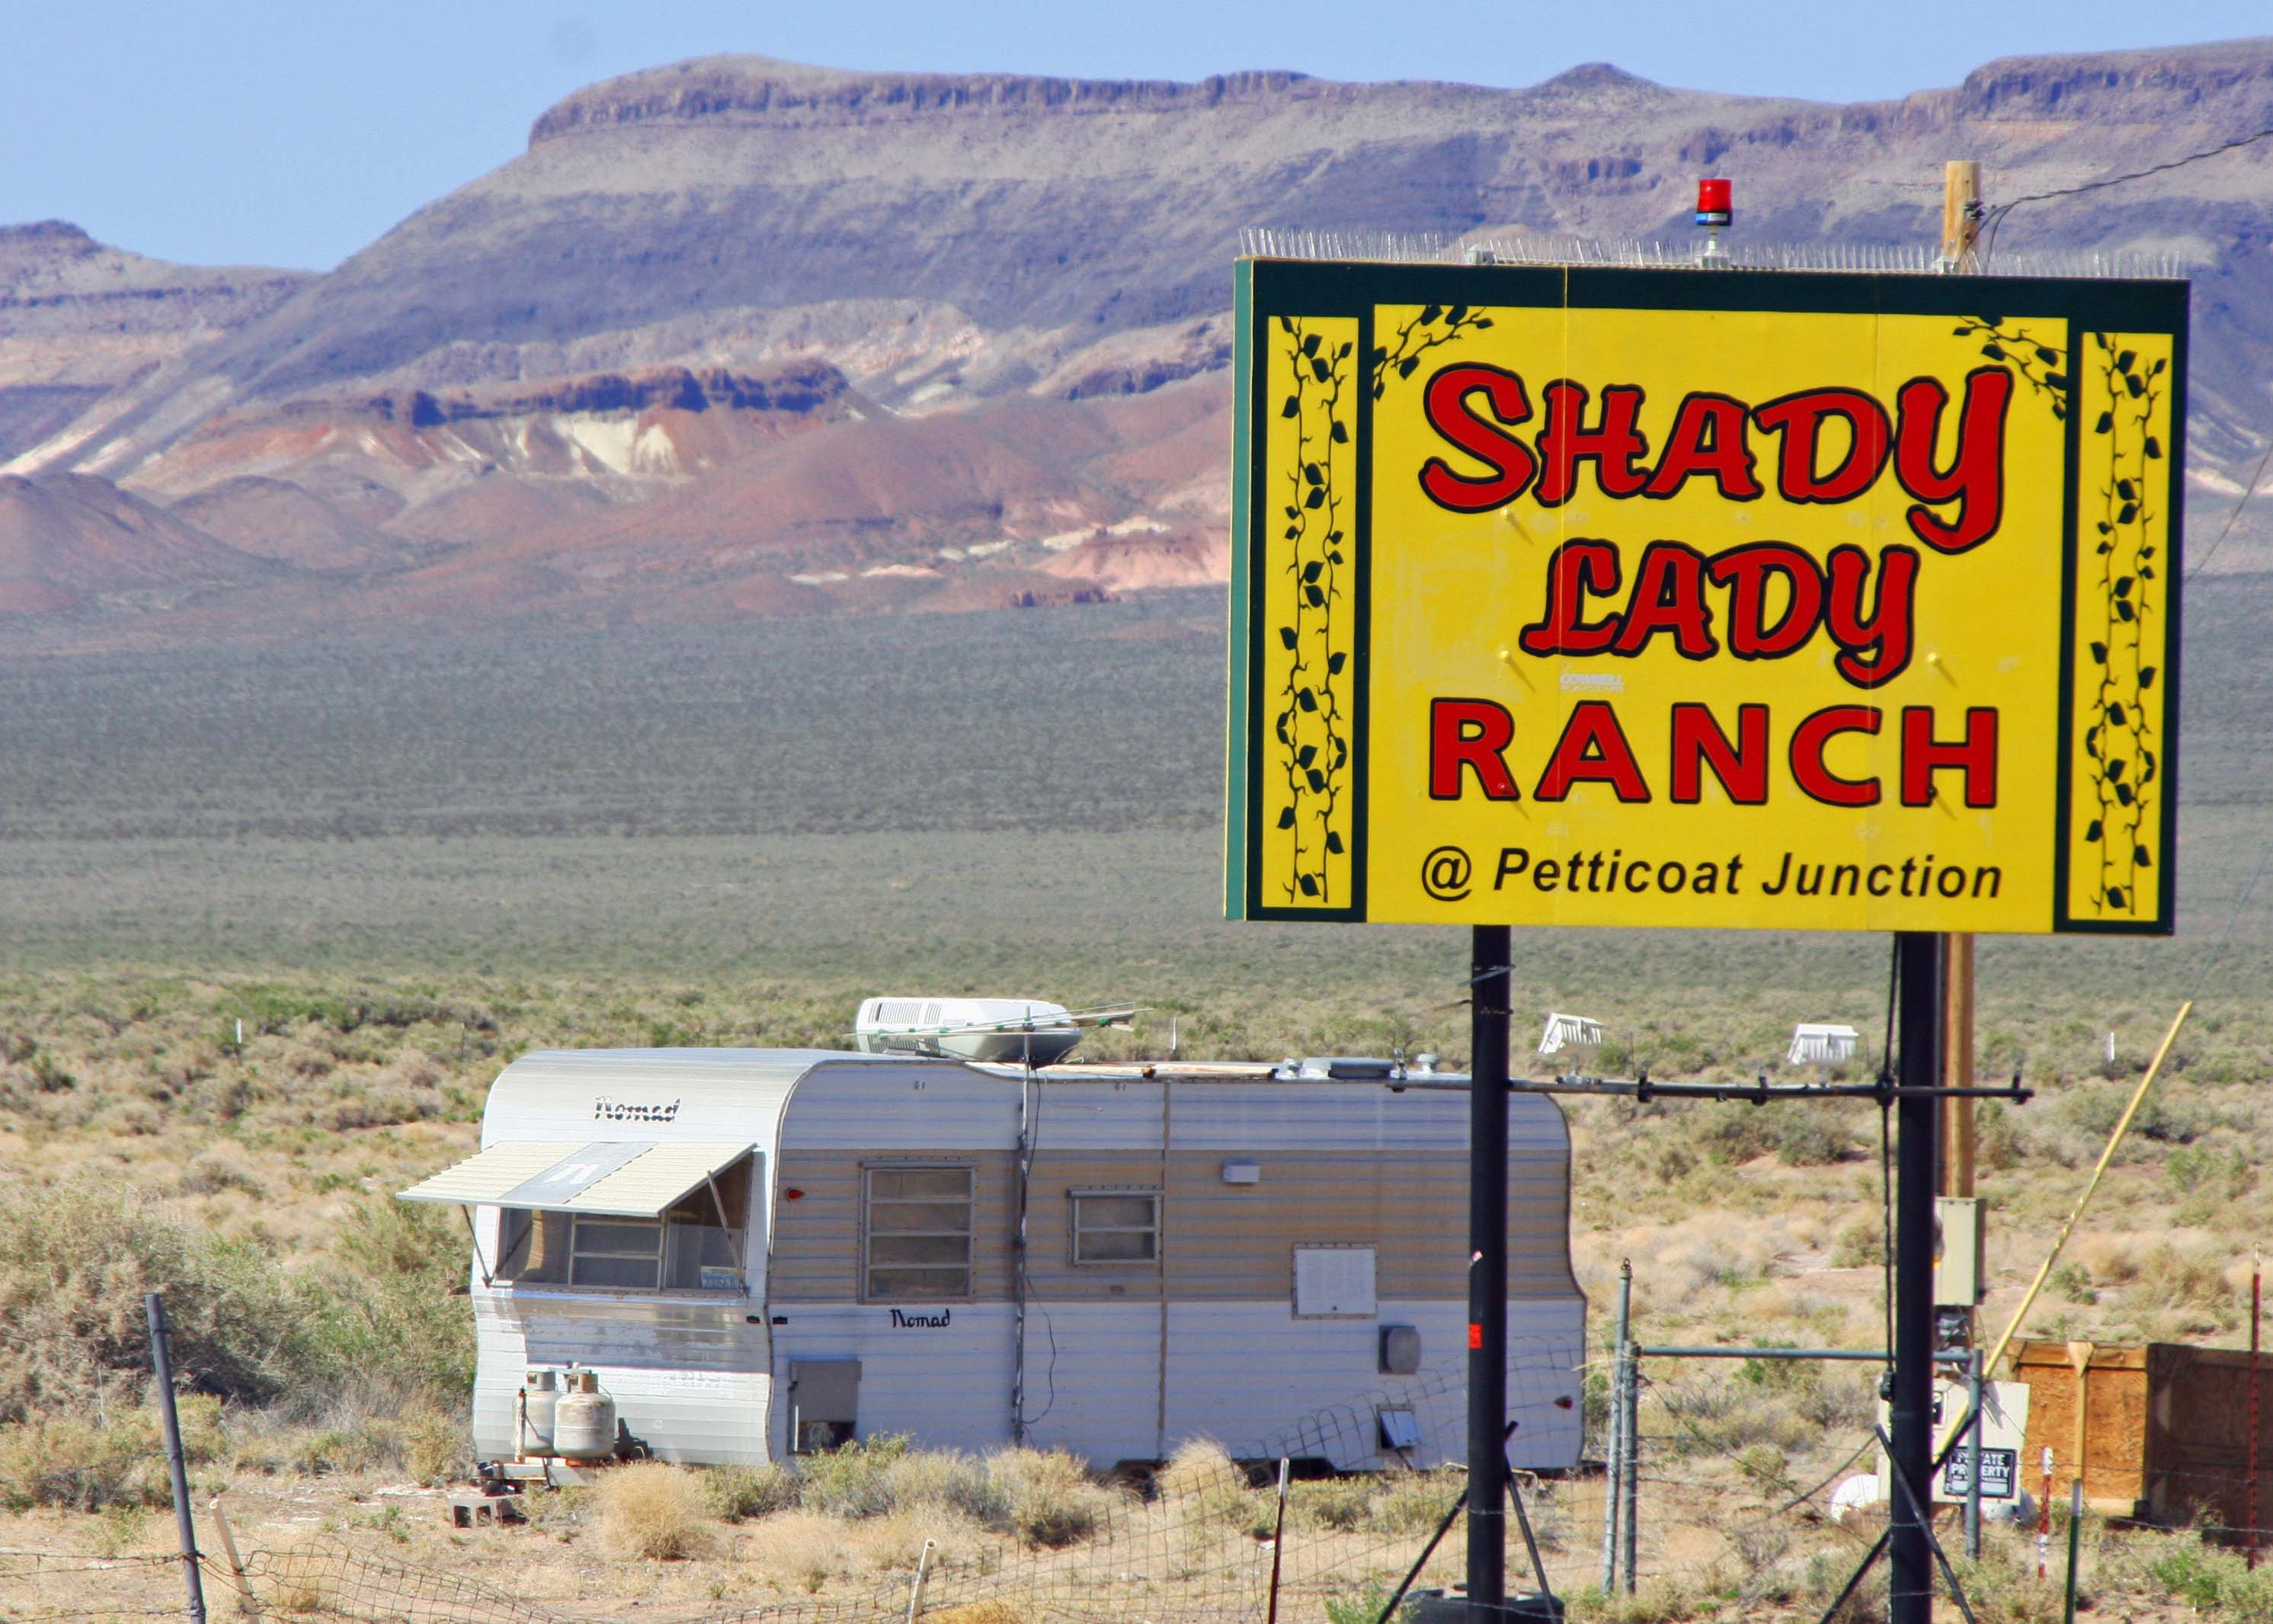 prostitution in nevada Nevada's legal brothels have to meet all the usual regulations of a local business, and then they have to adhere to stricter prostitution laws on top of that rounding it up view photos.